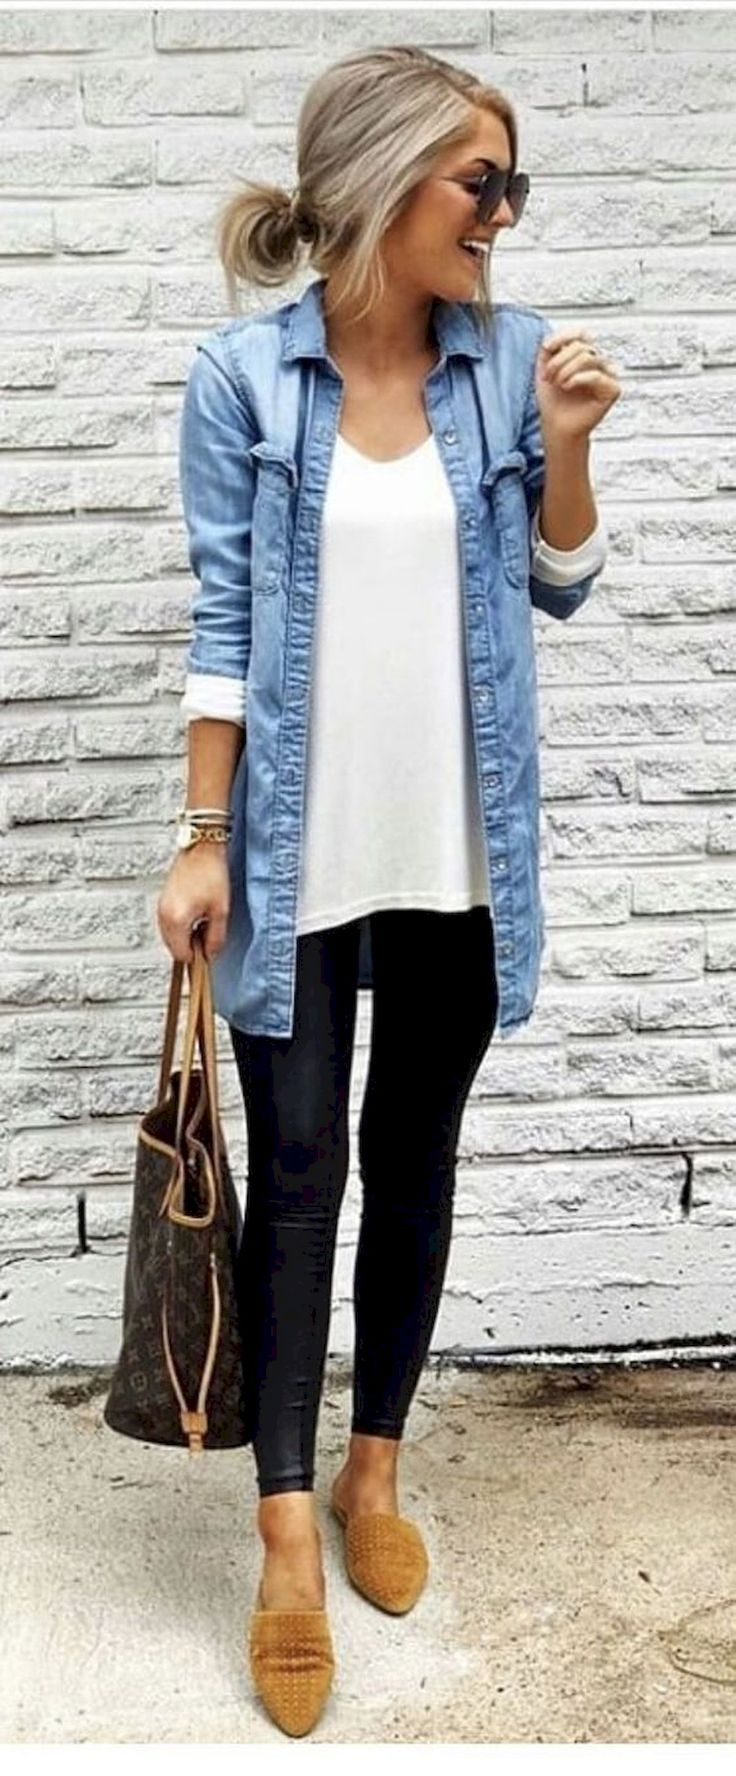 Black leggings, white tee and chambray shirt